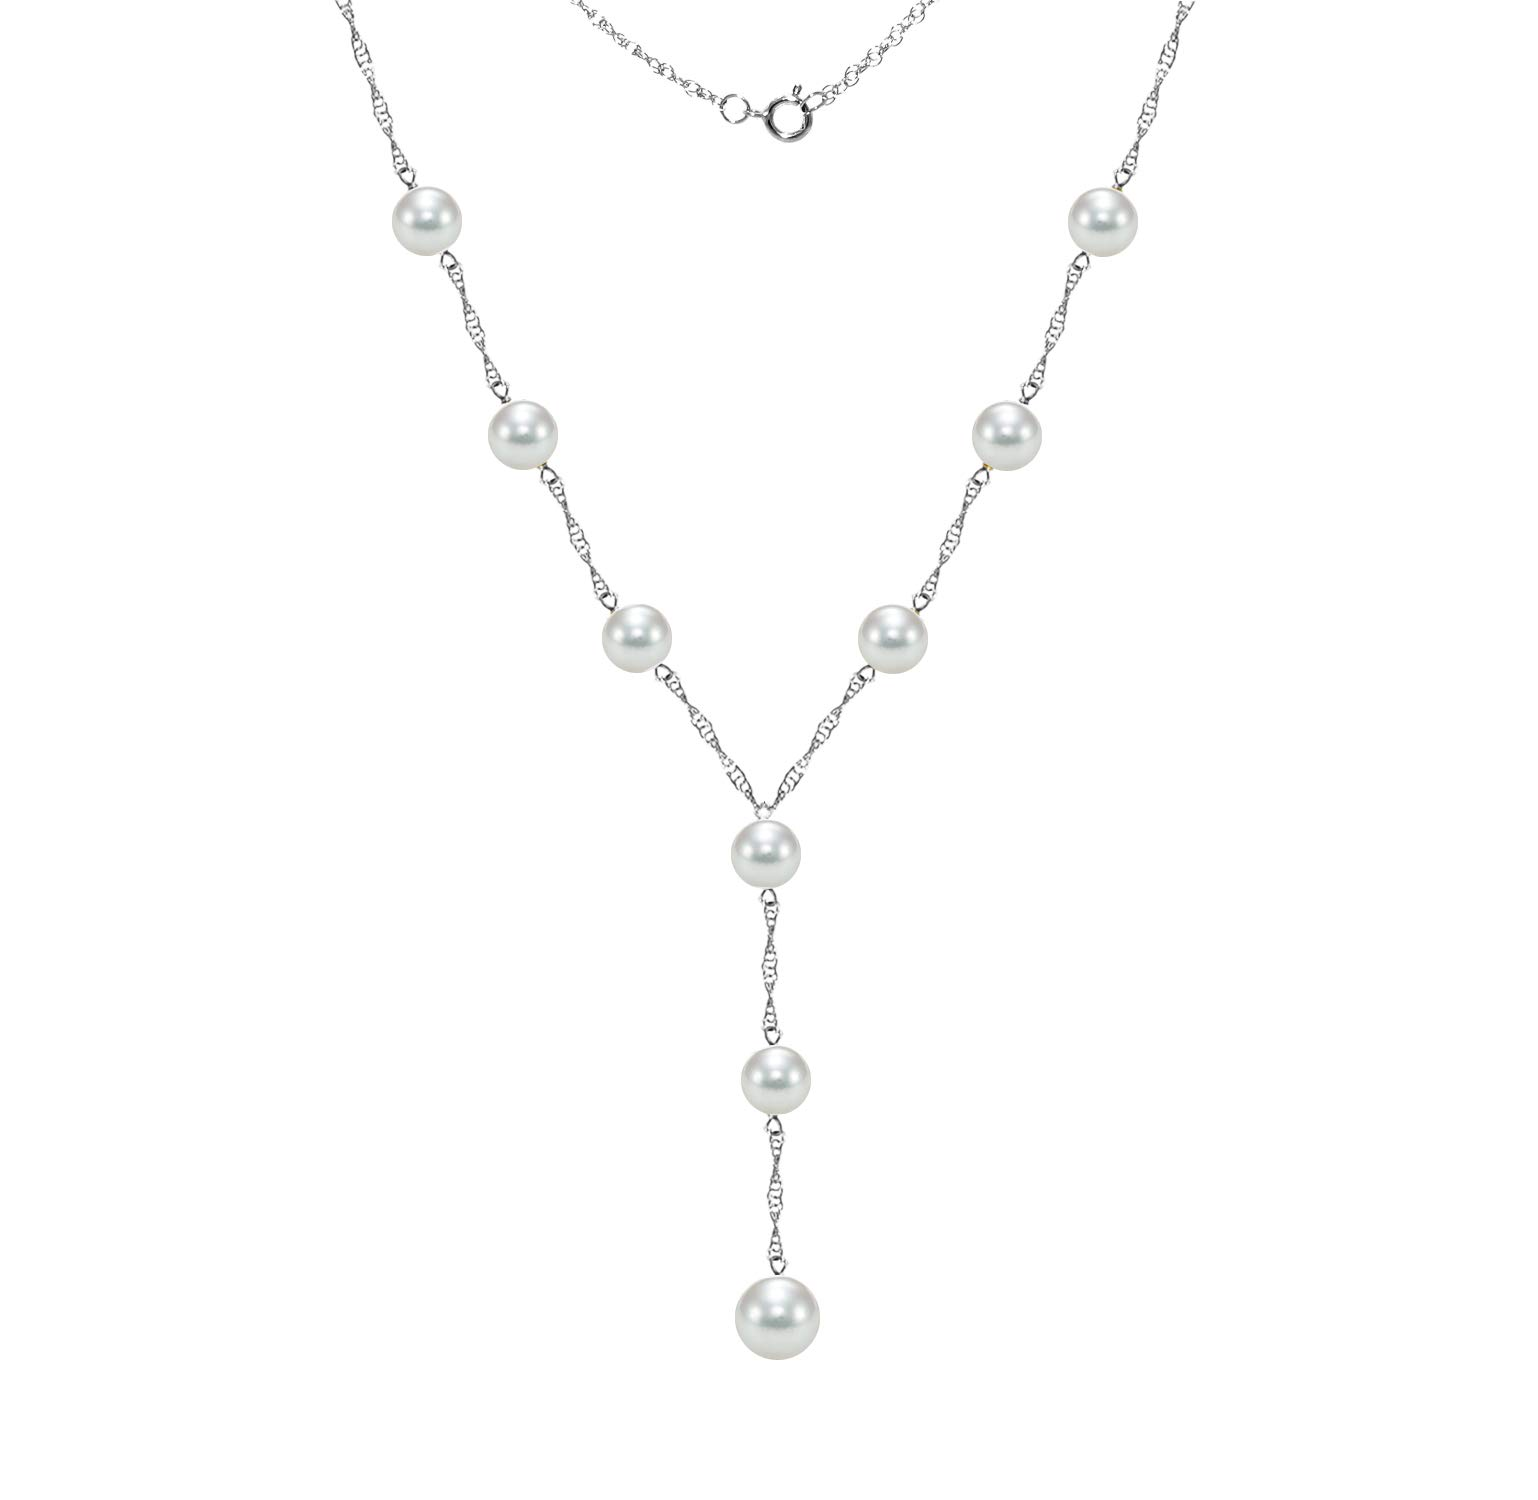 14k White Gold Lariat Tin Cup Station Necklace Saltwater White Akoya Cultured Pearl 6.5-7mm and 8-8.5mm, 18'' + 2'' Drop